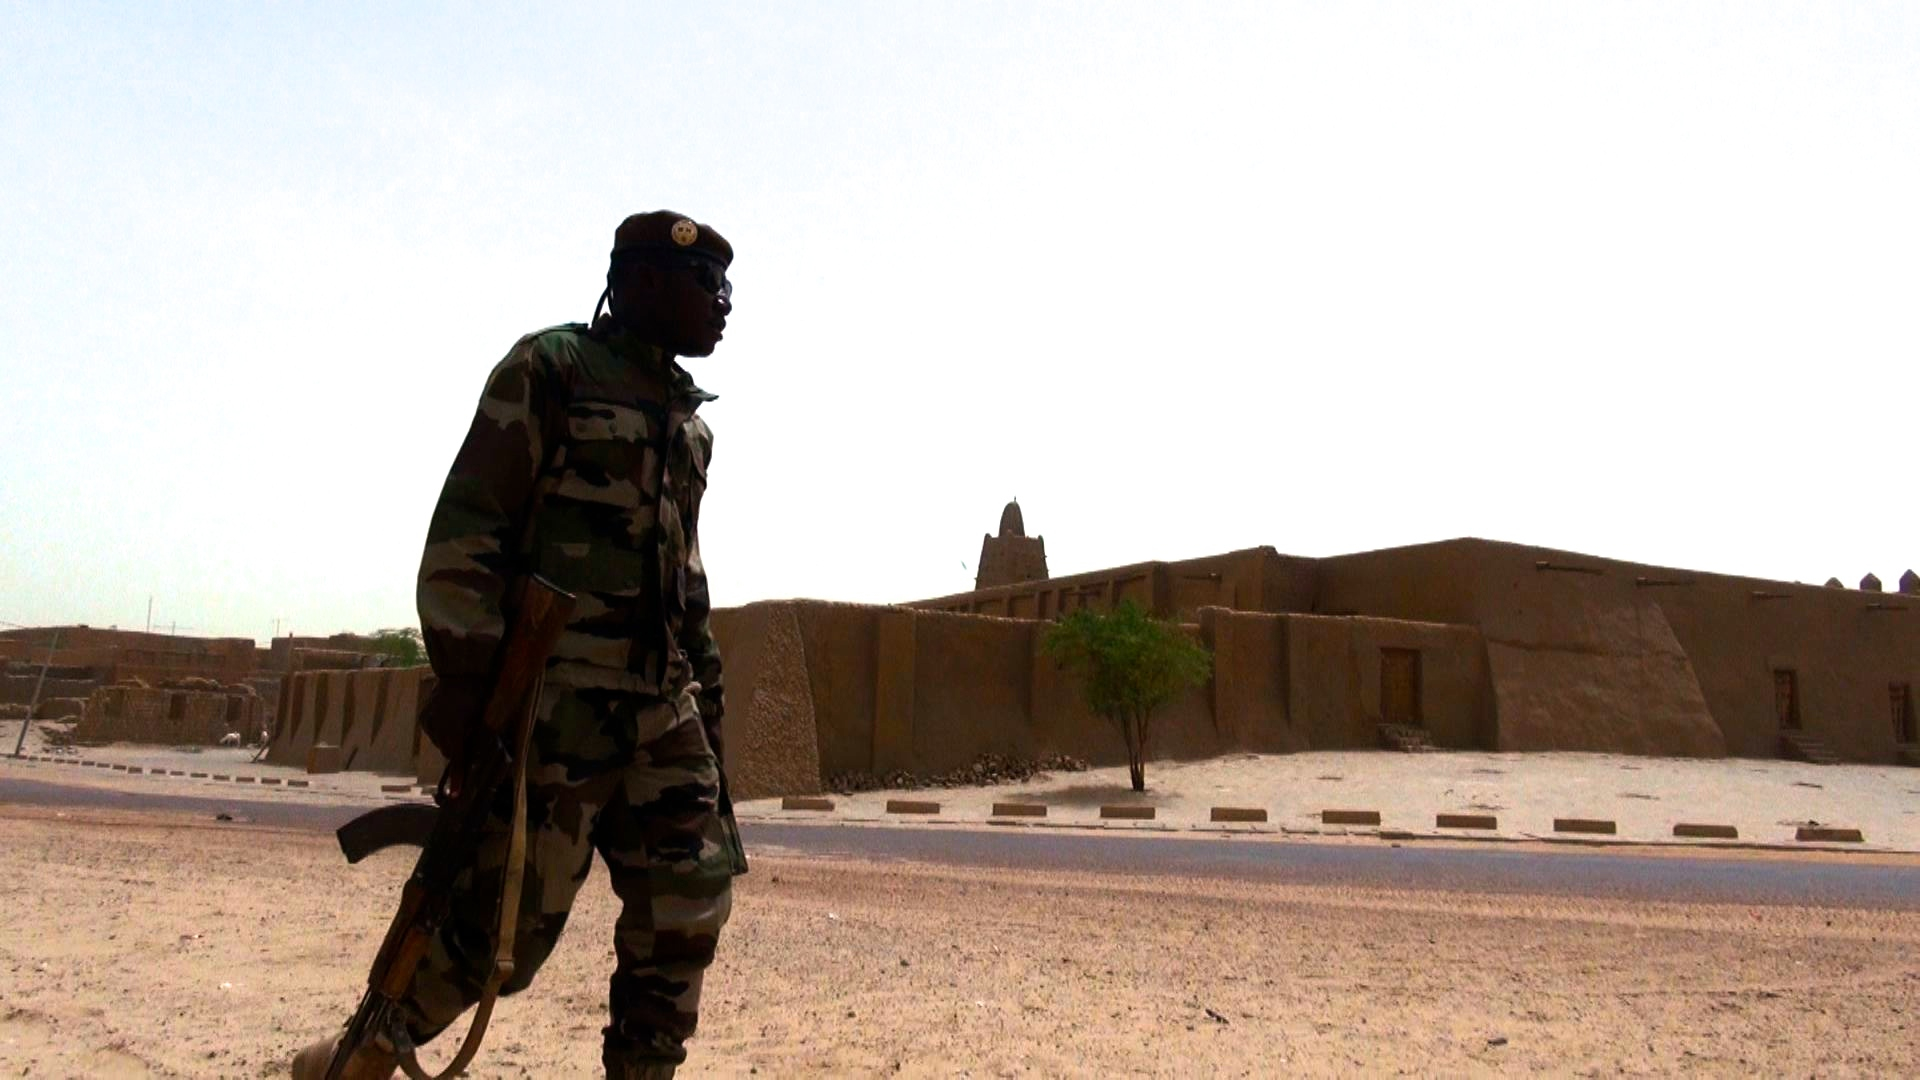 Soldier patrols in front of Djinguereber Mosque - Francois Rihouay